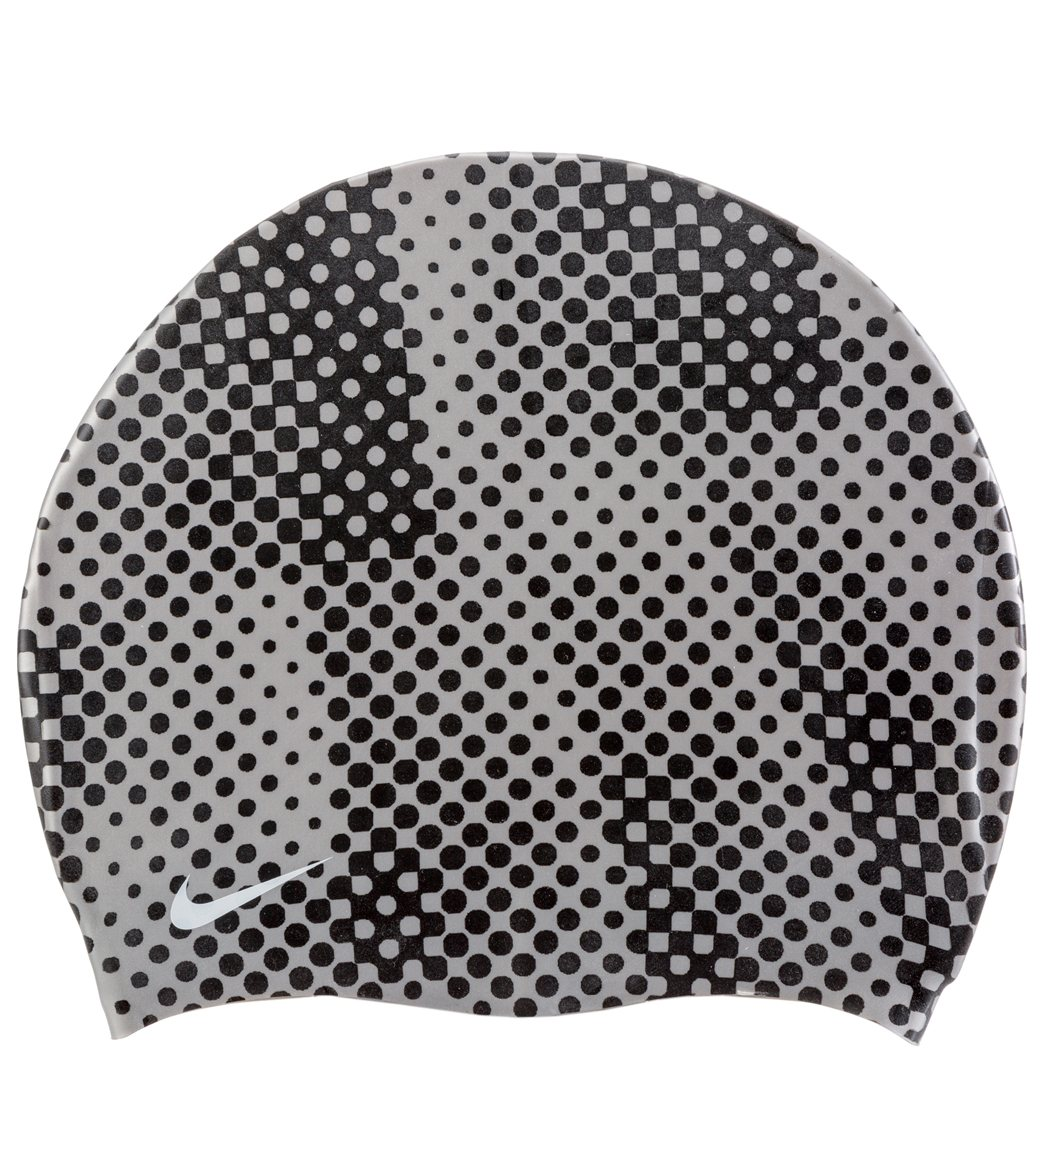 2d6bca2544f Nike Carbon Fiber Silicone Cap at SwimOutlet.com